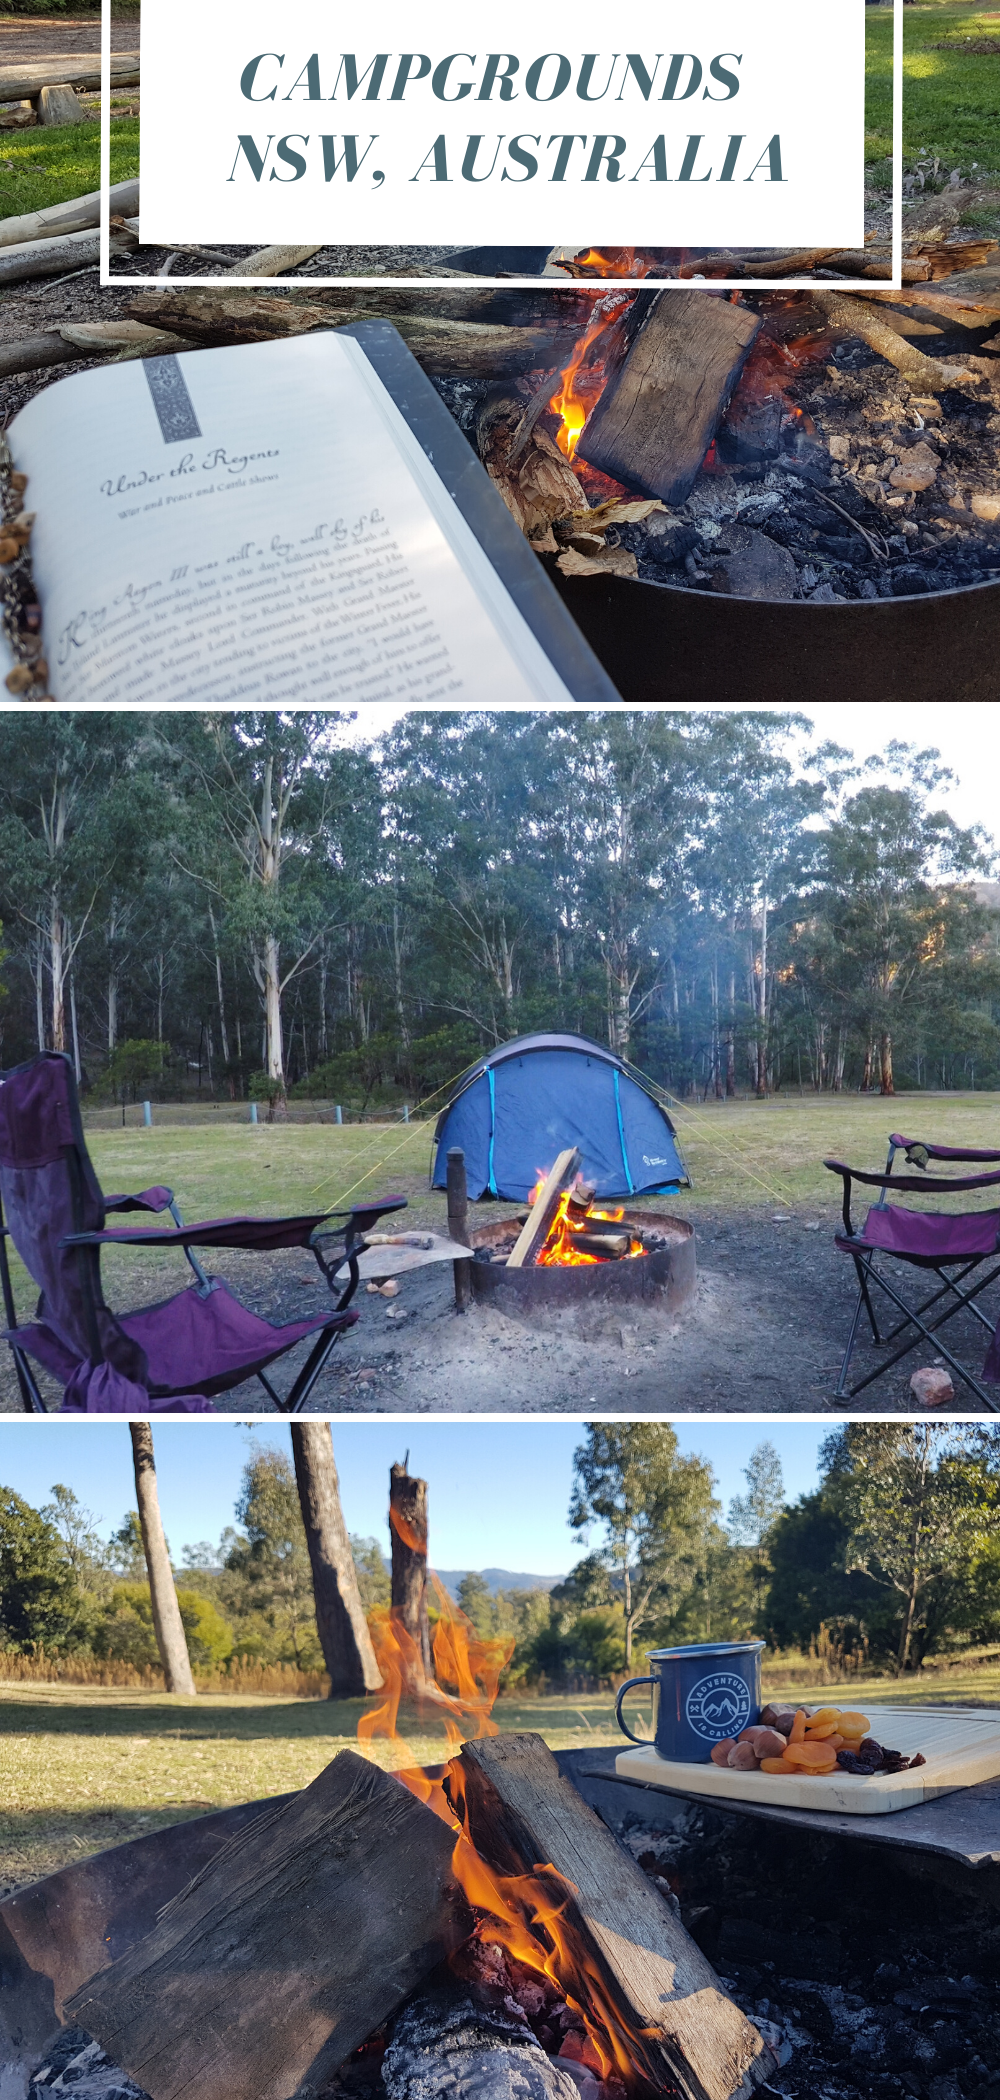 Must visit campgrounds, NSW Australia in 2020 | Camping ...